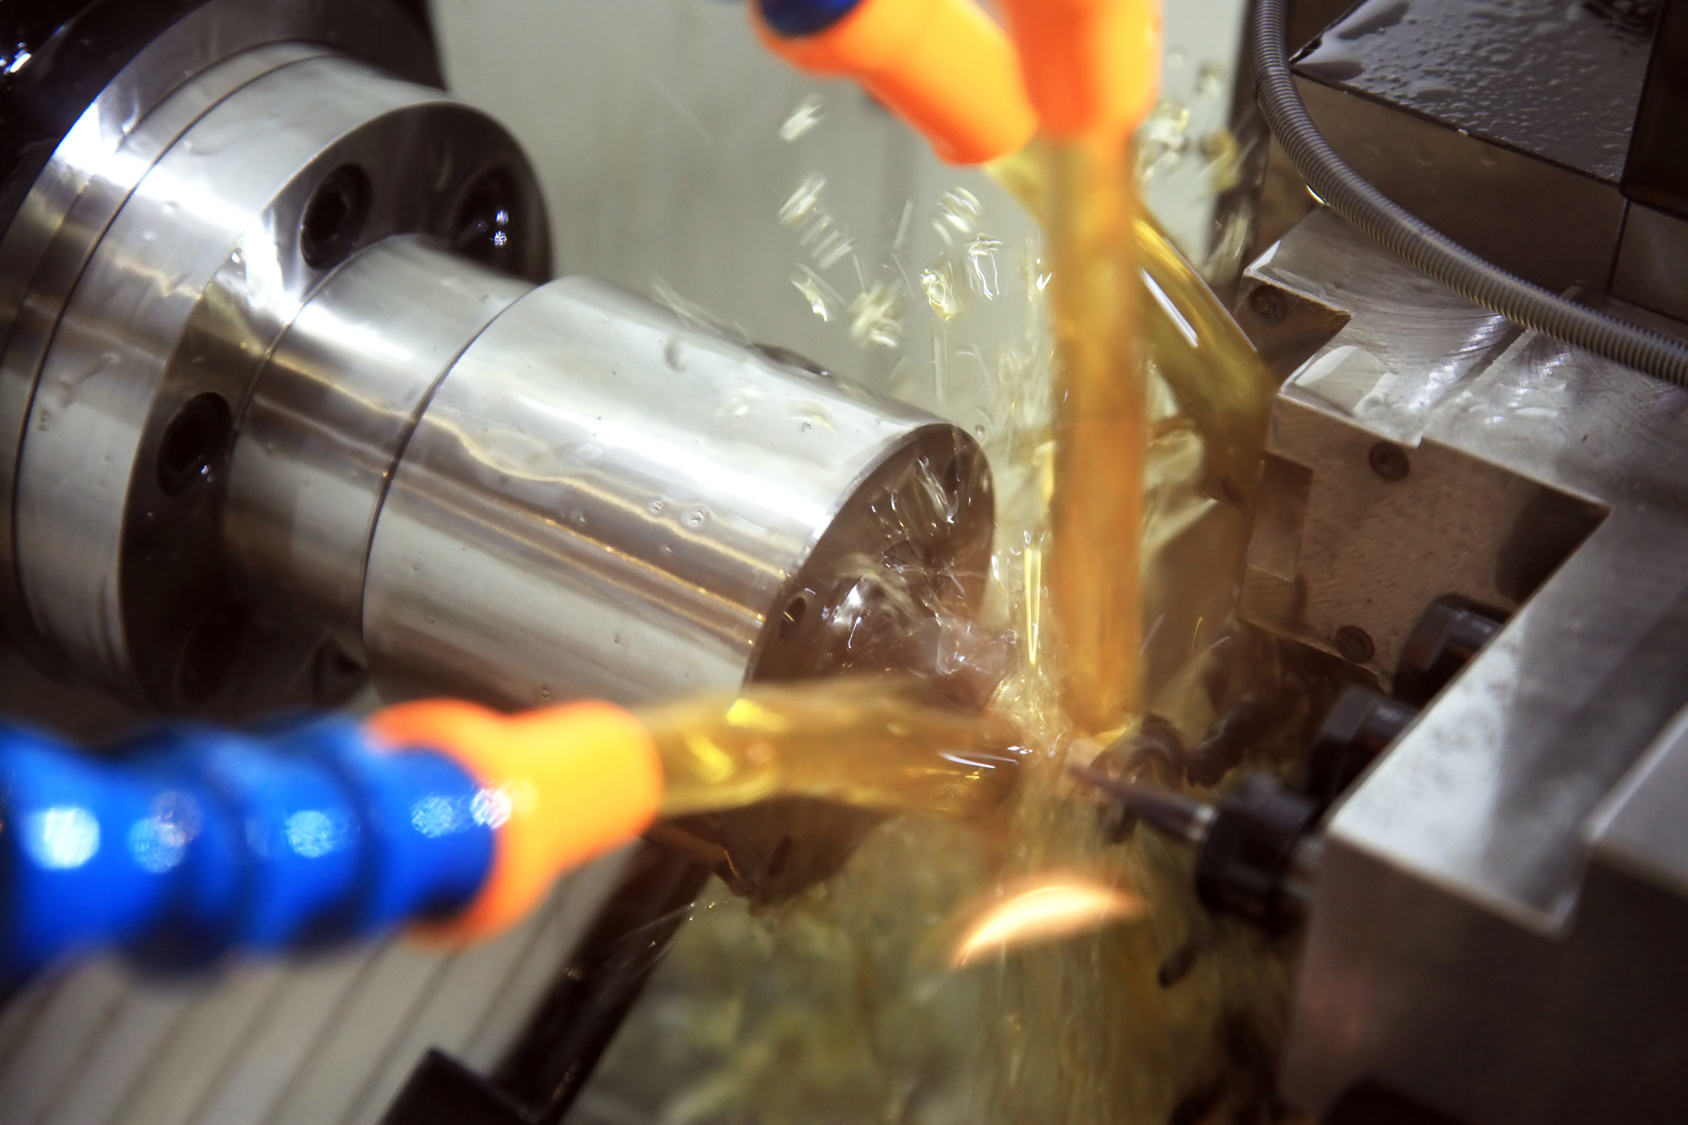 metal blank machining process on lathe with cutting tool and coolant at steel manufacturing